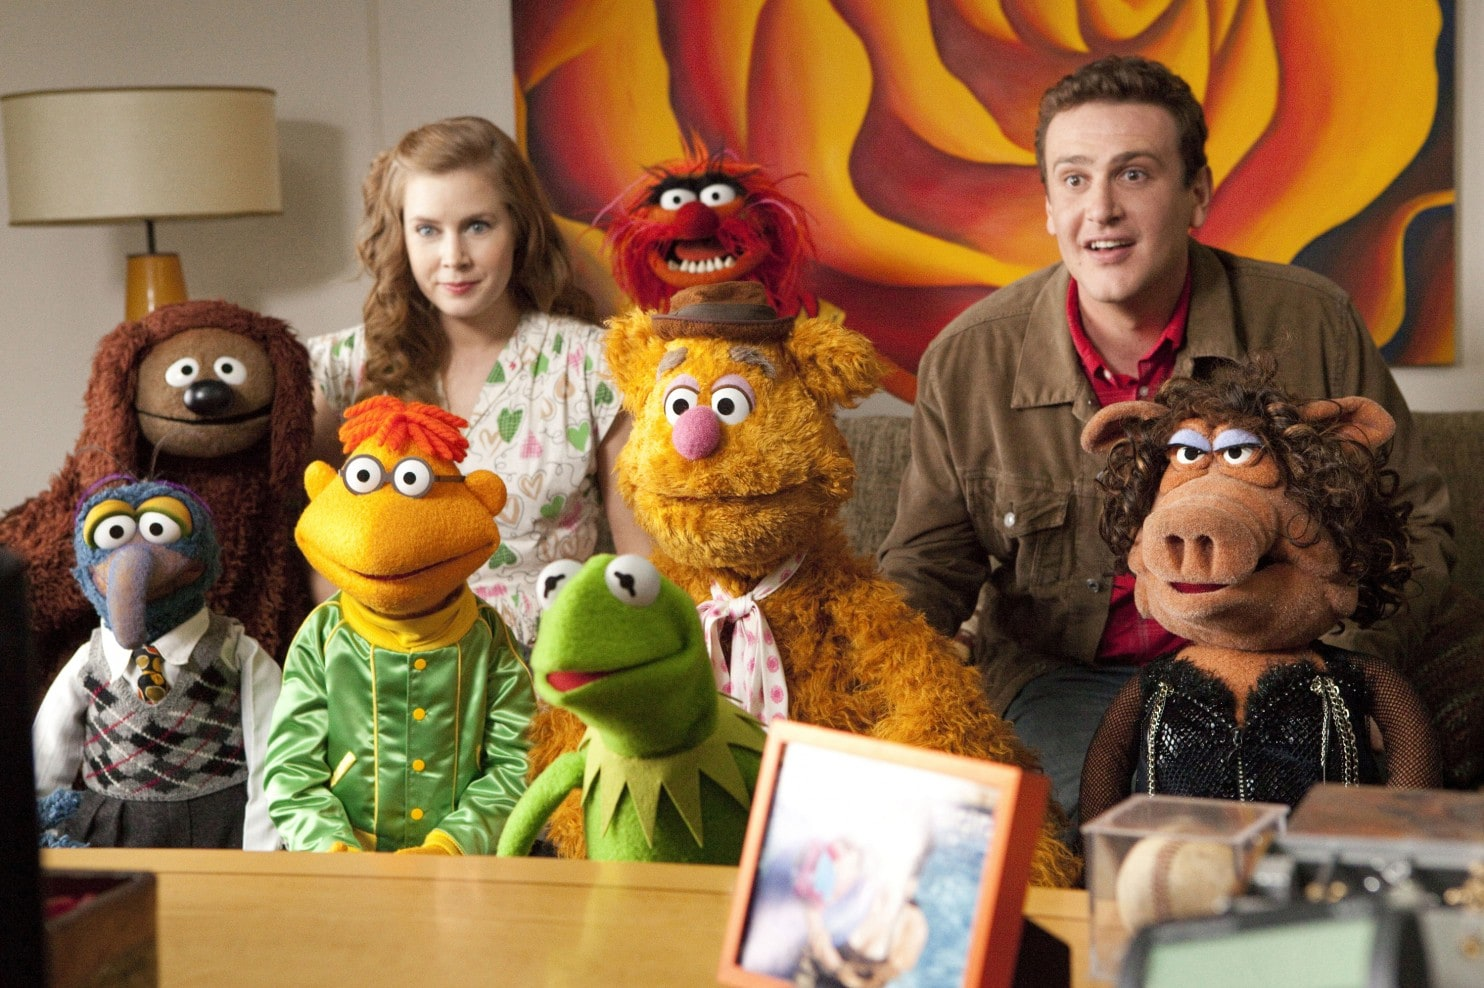 The Muppets back on the big screen along with Amy Adams and Jason Segel in The Muppets (2011)